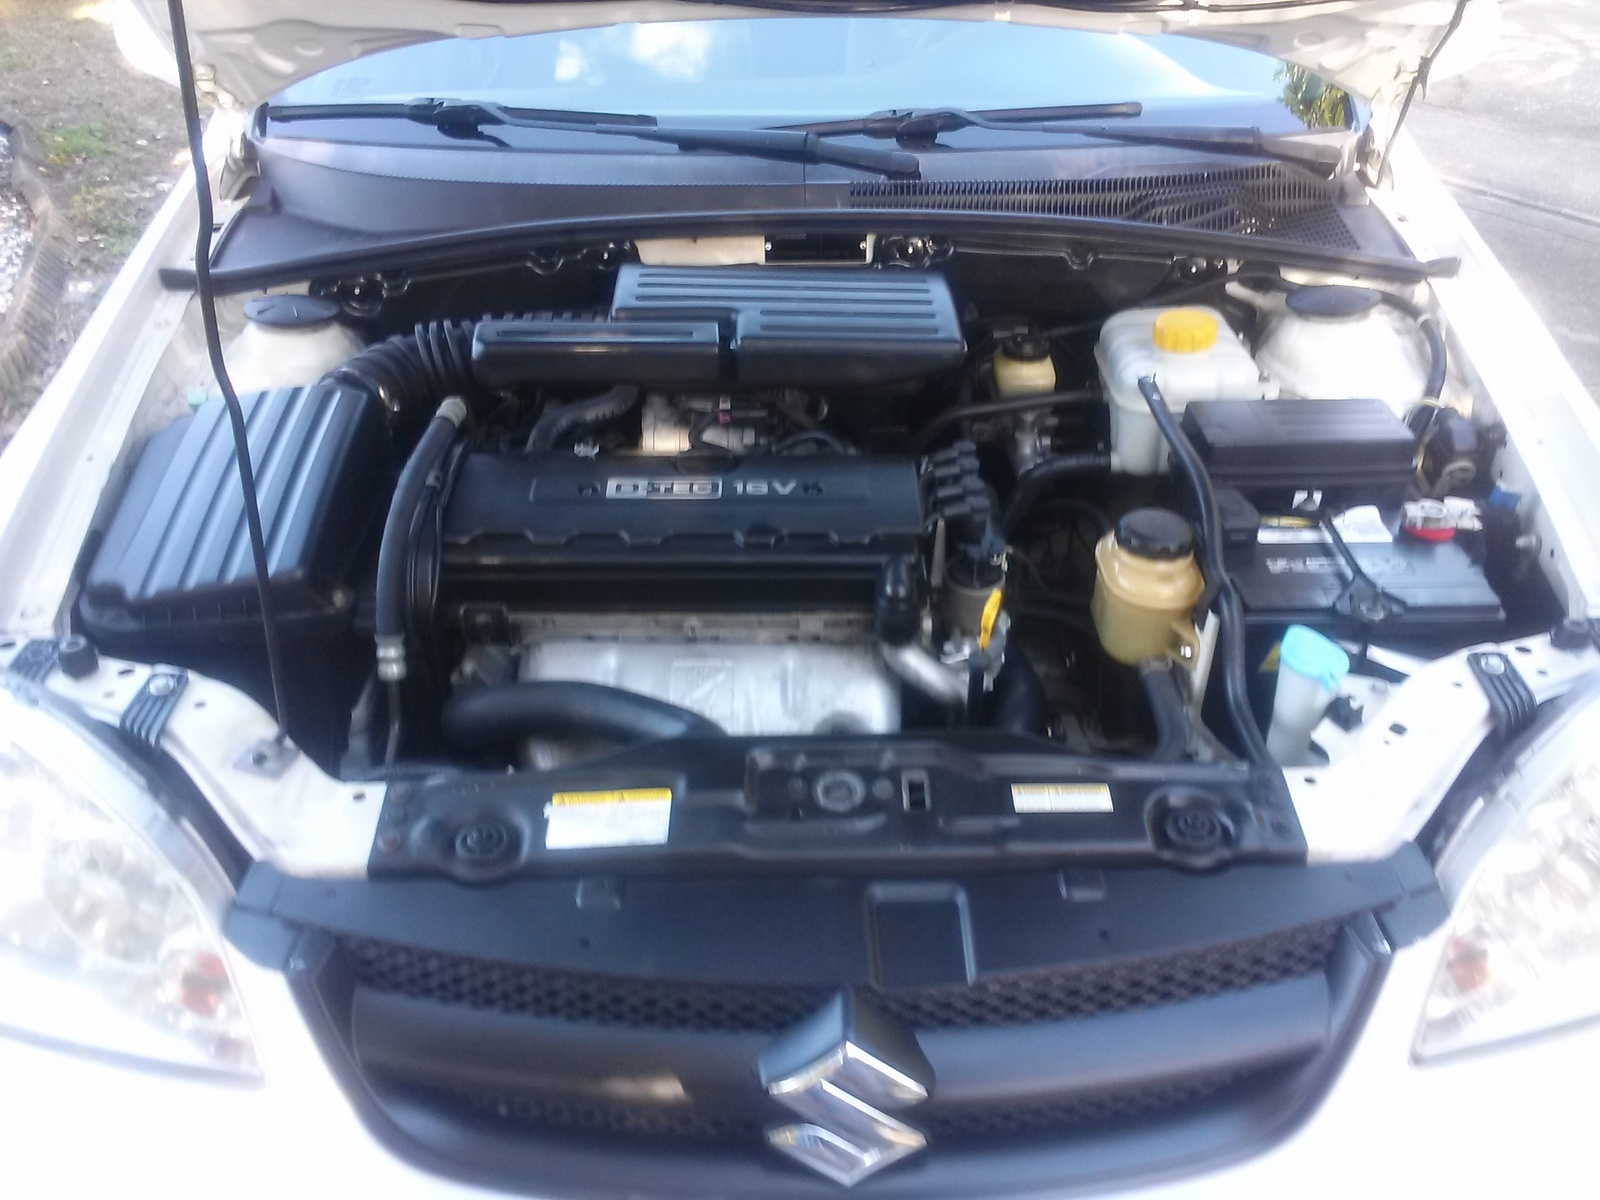 2006 Suzuki Forenza - Other Pictures